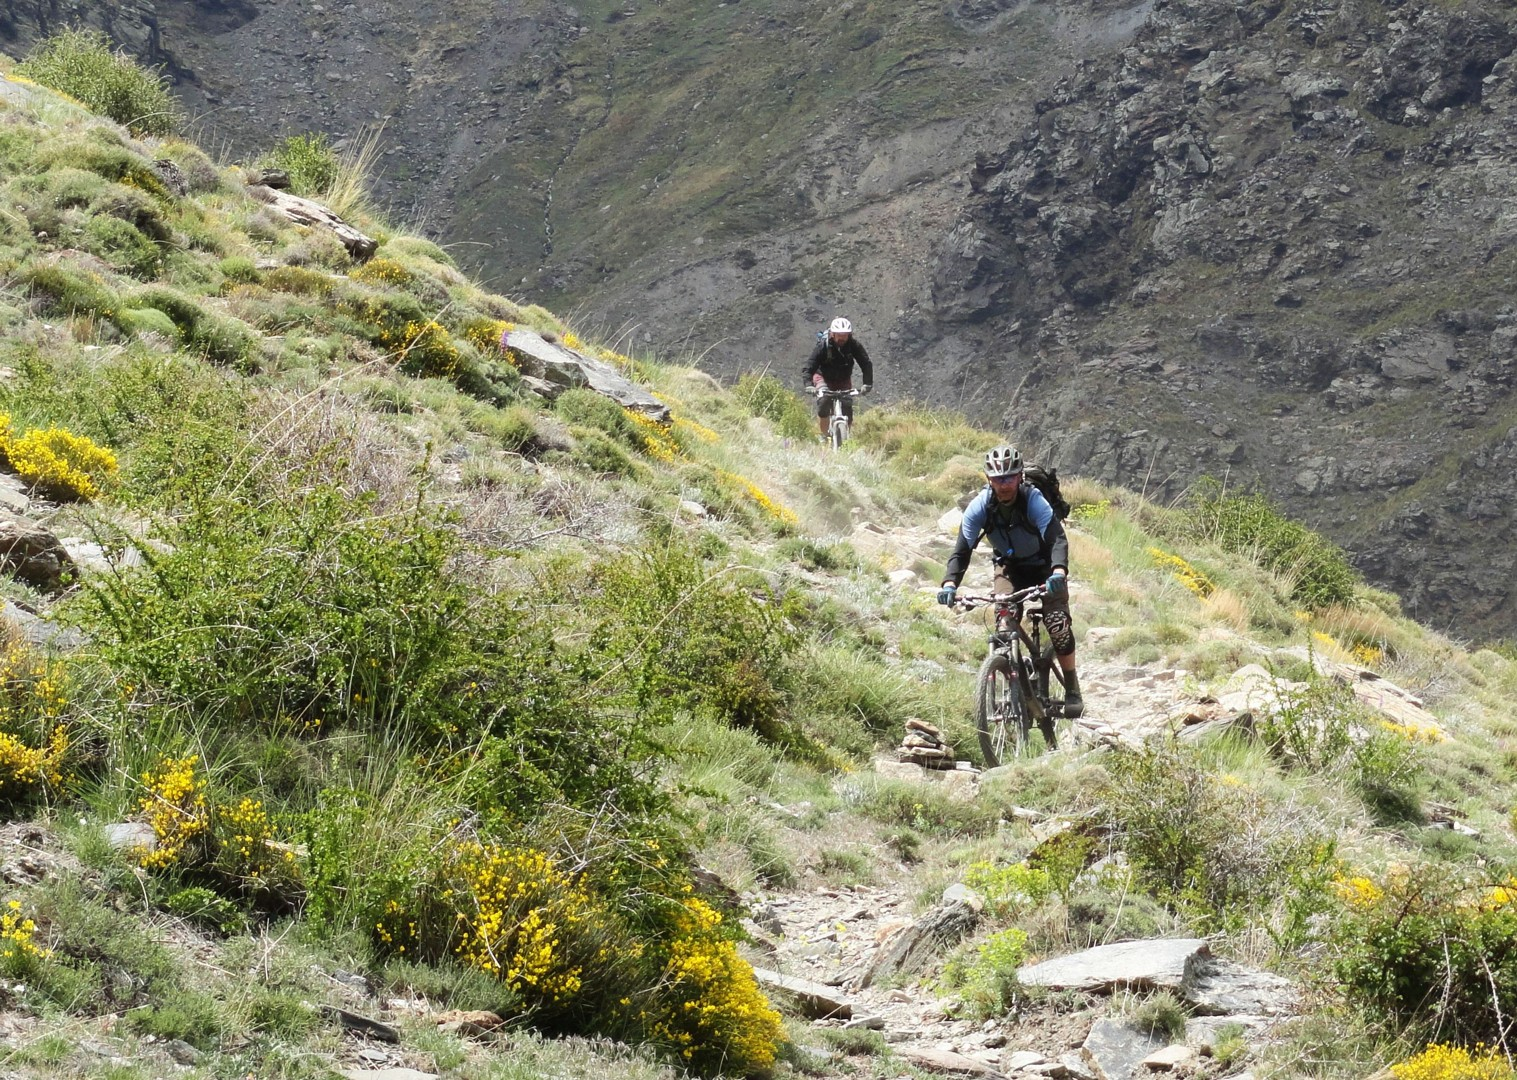 guided-mountain-bike-holiday-spain-sierra-nevada.jpg - Spain - Sensational Sierra Nevada - Mountain Biking